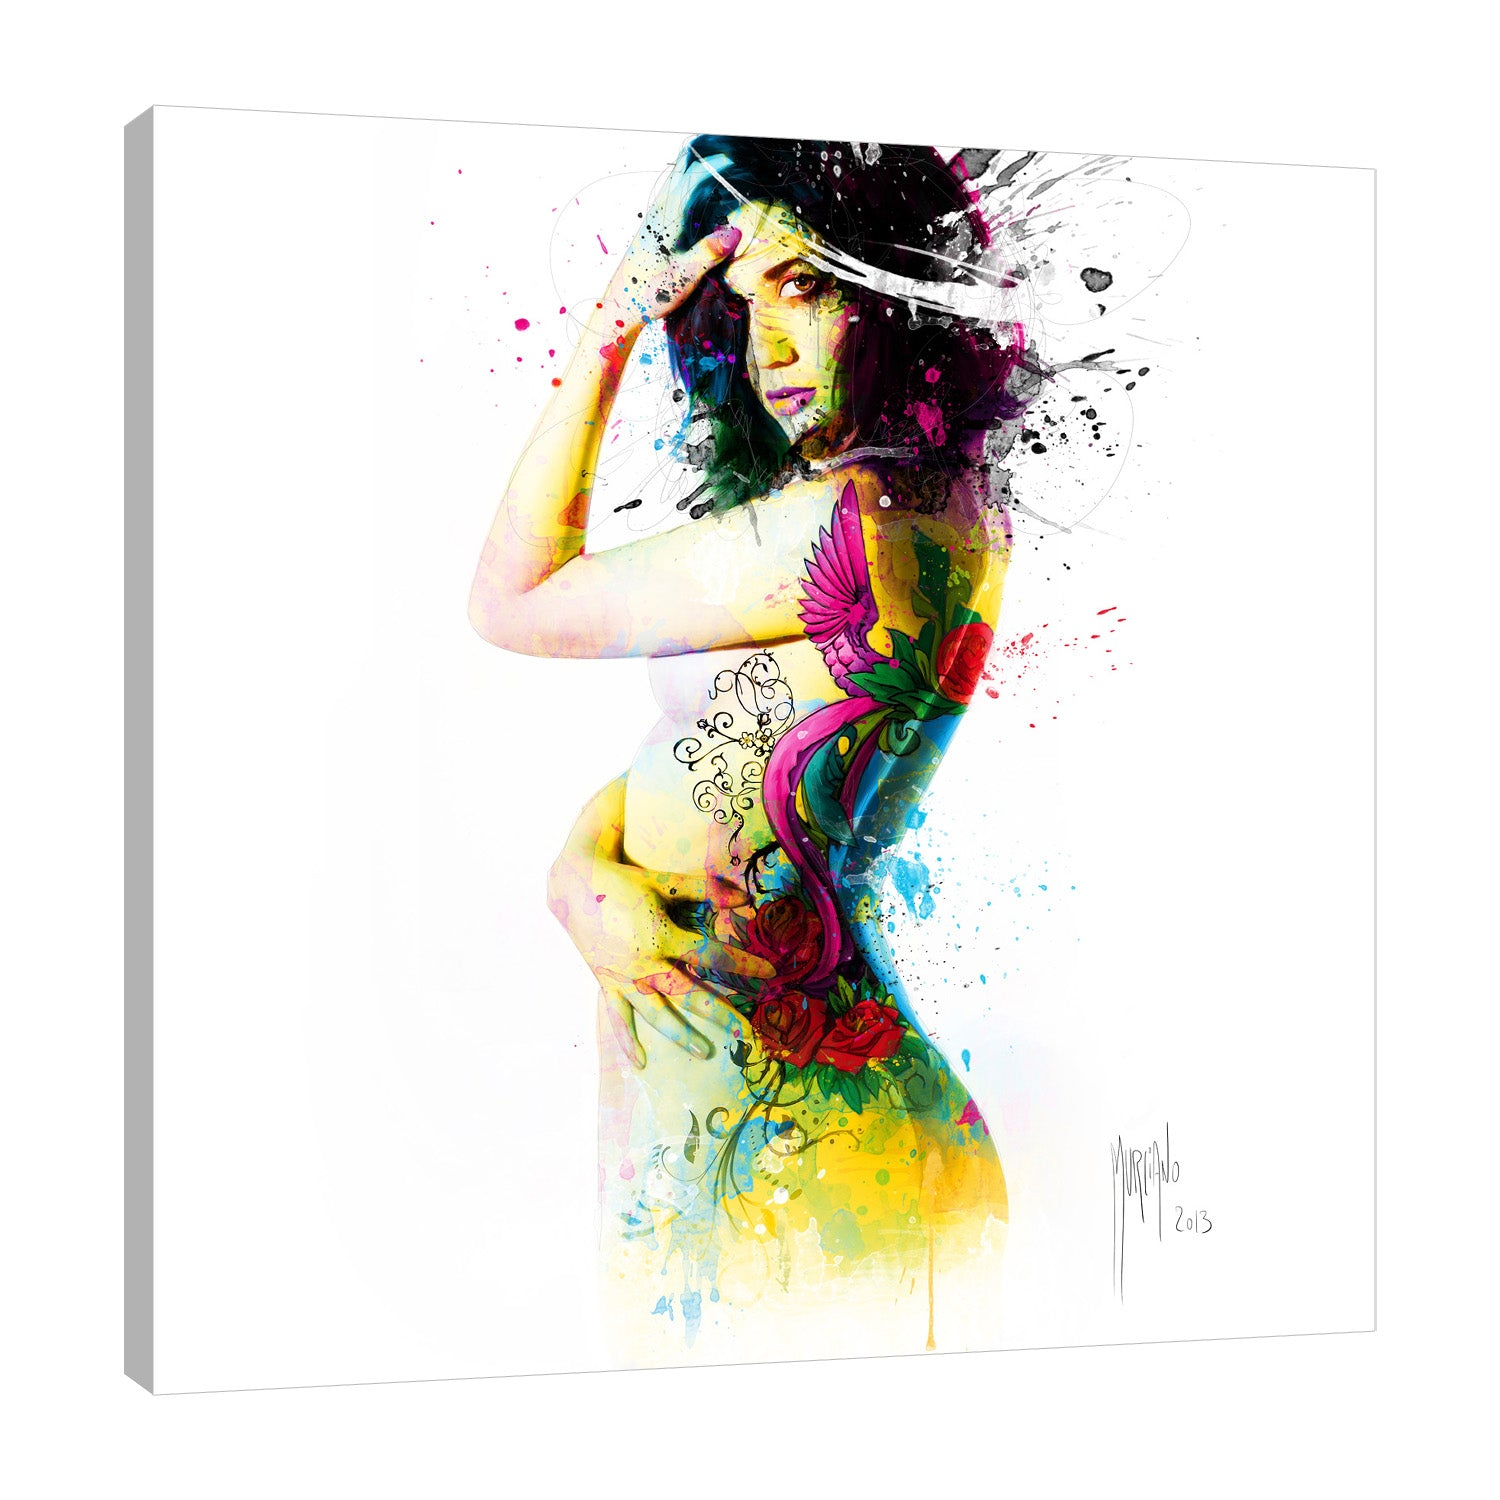 Patrice-Murciano,Modern & Contemporary,Floral & Botanical,woman,flowers,florals,splatters,Salmon Pink,Black,White,Gray